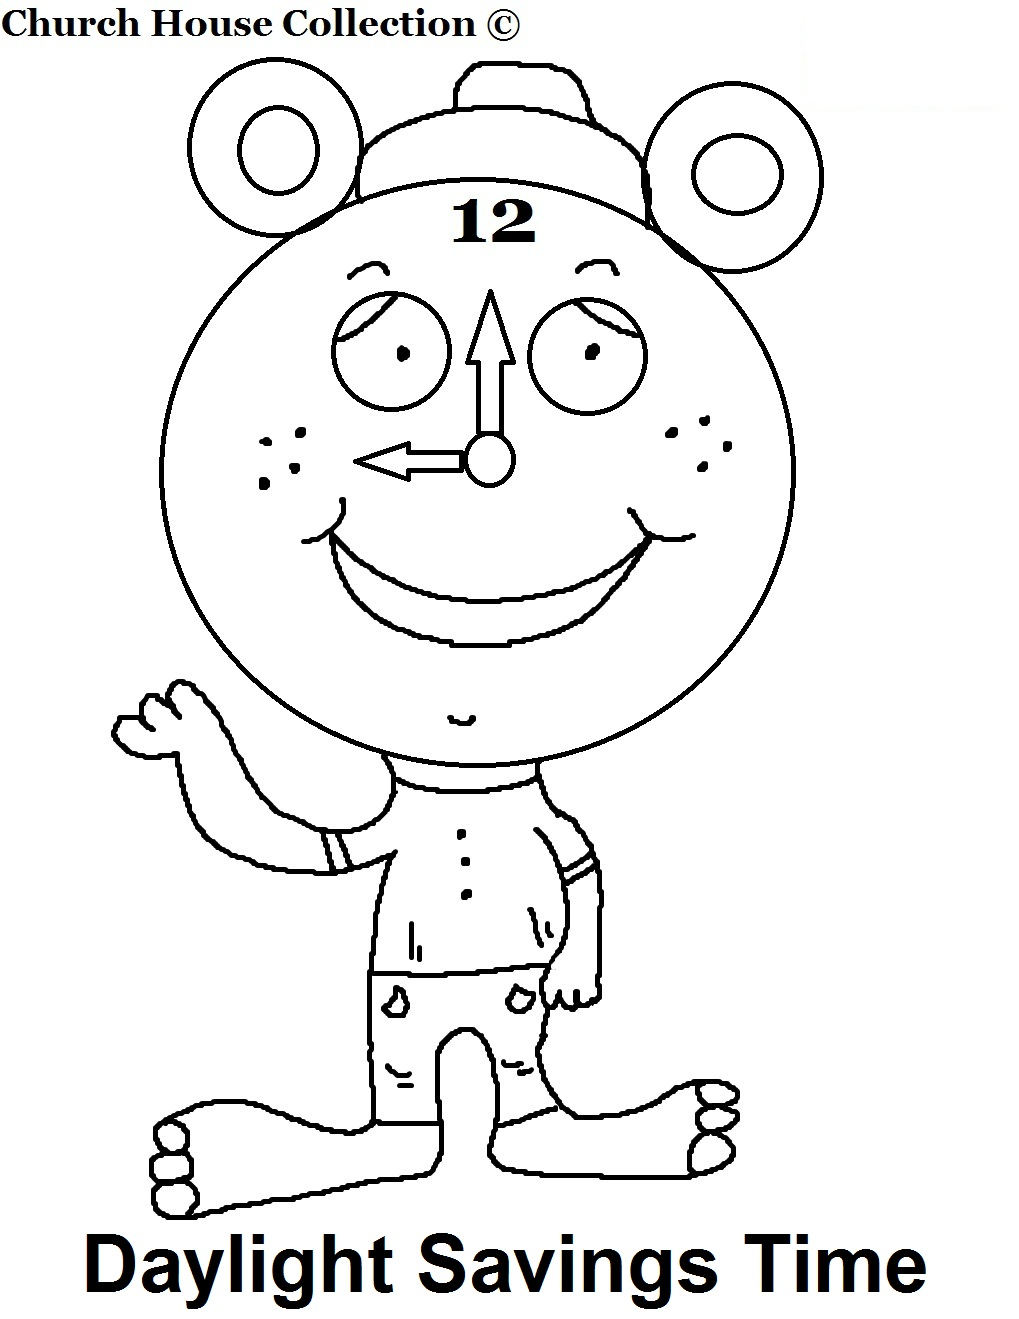 savings coloring pages - photo#7